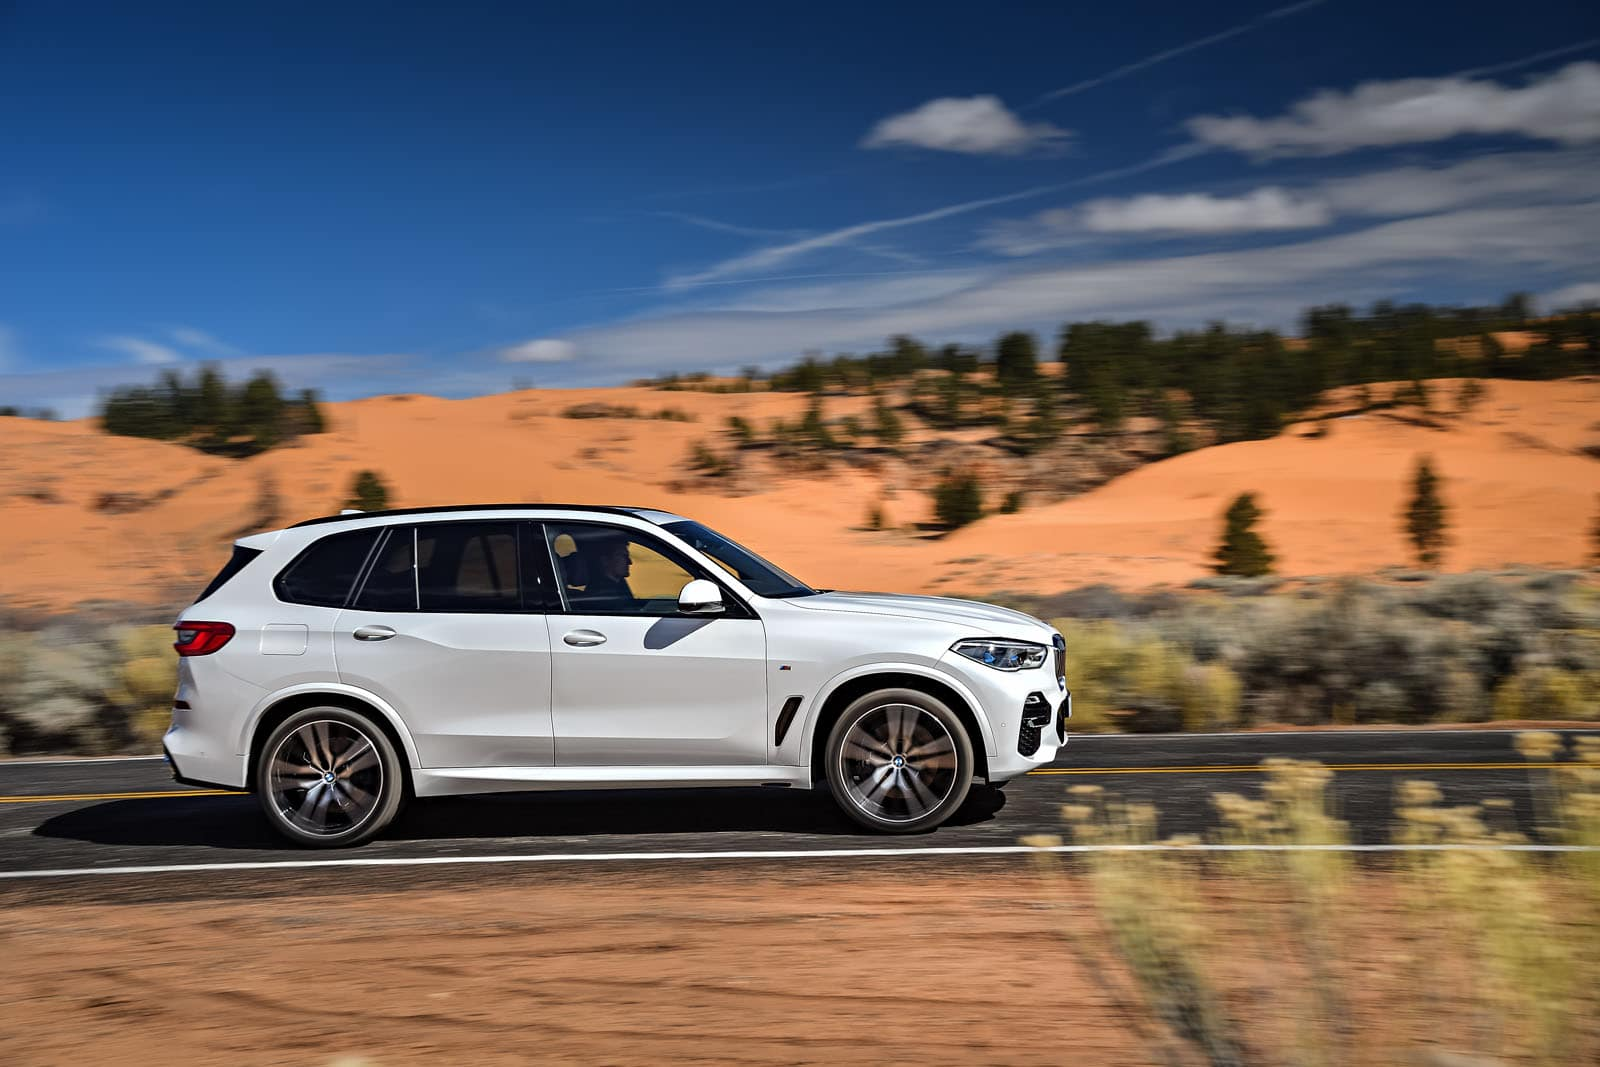 2019 Bmw X5 Xdrive50i Review Too Much No Motor Illustrated